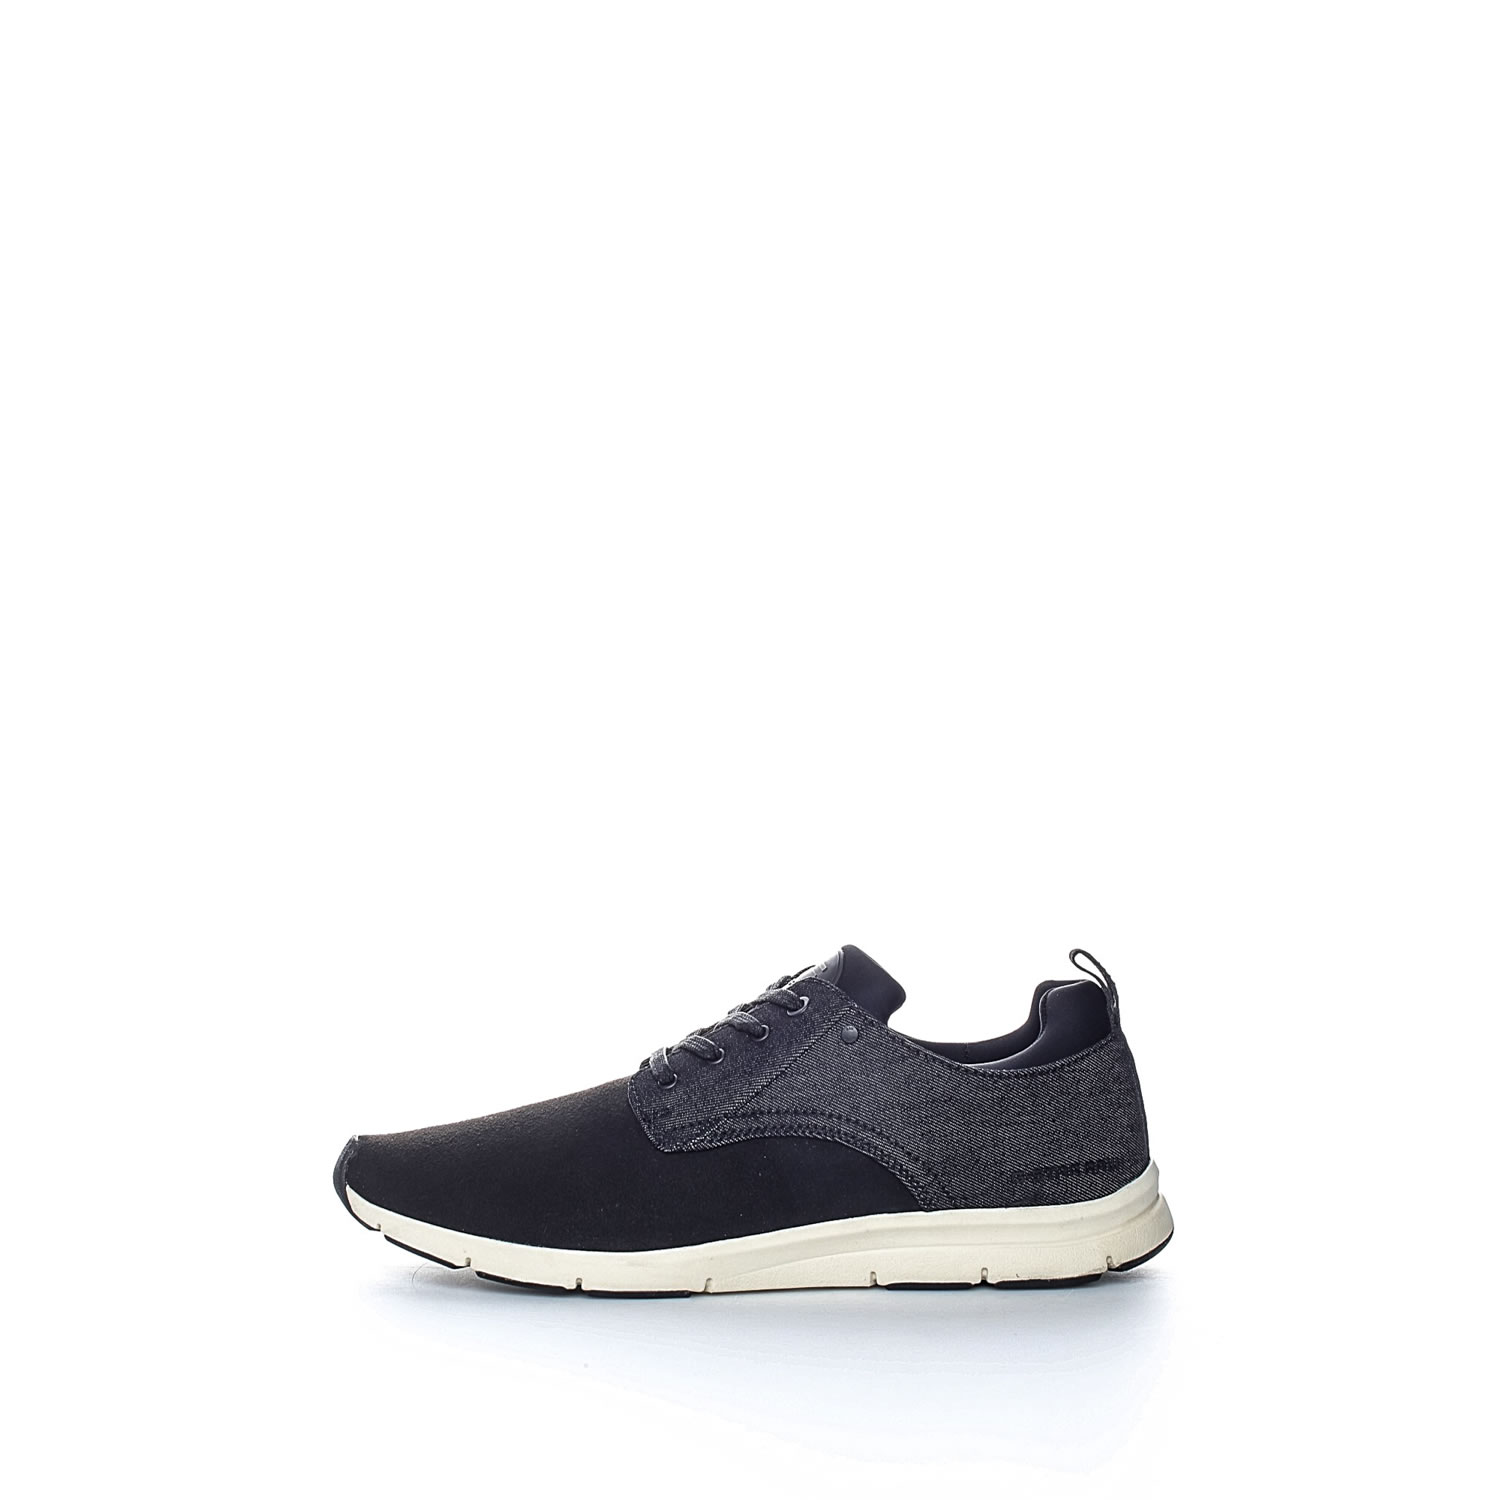 G-STAR RAW – Ανδρικά sneakers G-STar Raw Aver μαύρα